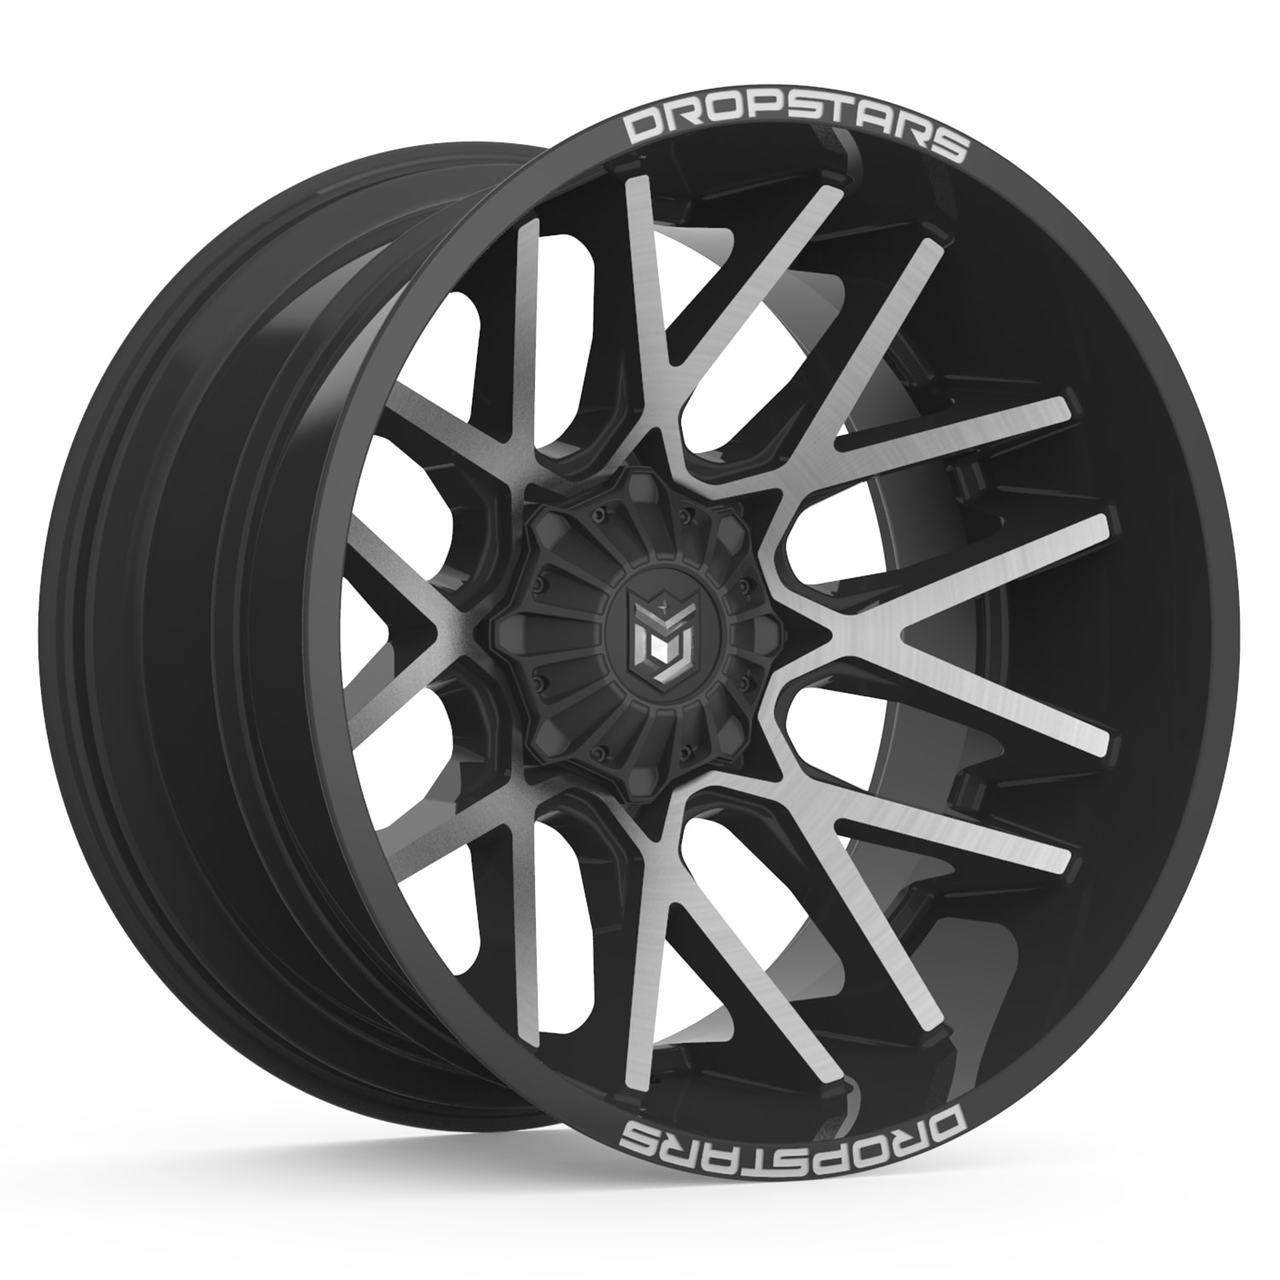 25 års rim Dropstars 654MB 20x10 8x6.5 8x165.1 Black Machine  25 Wheels Rims  25 års rim